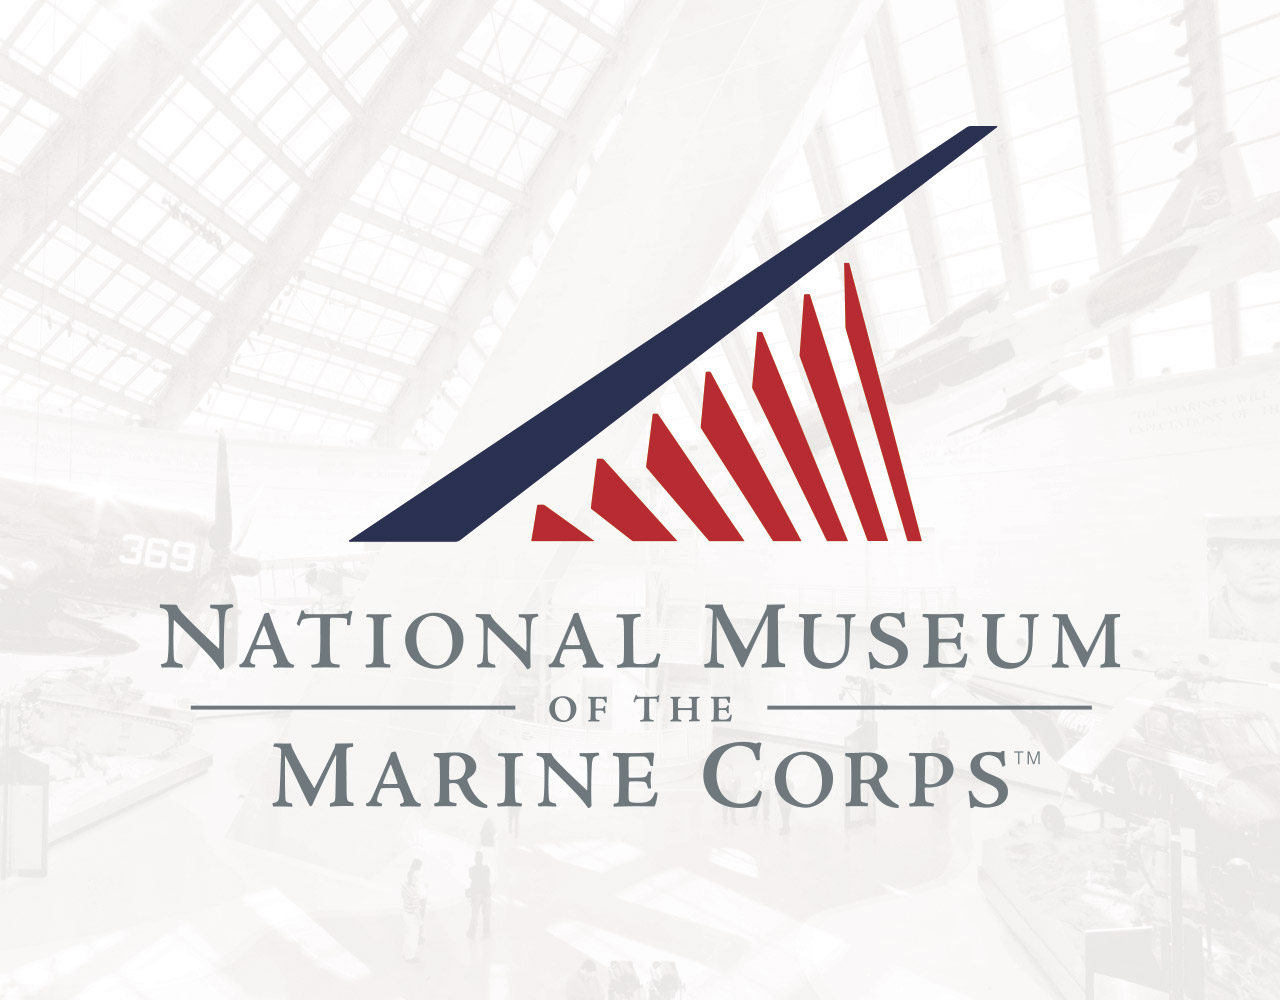 national mueum of the marine corps_identity